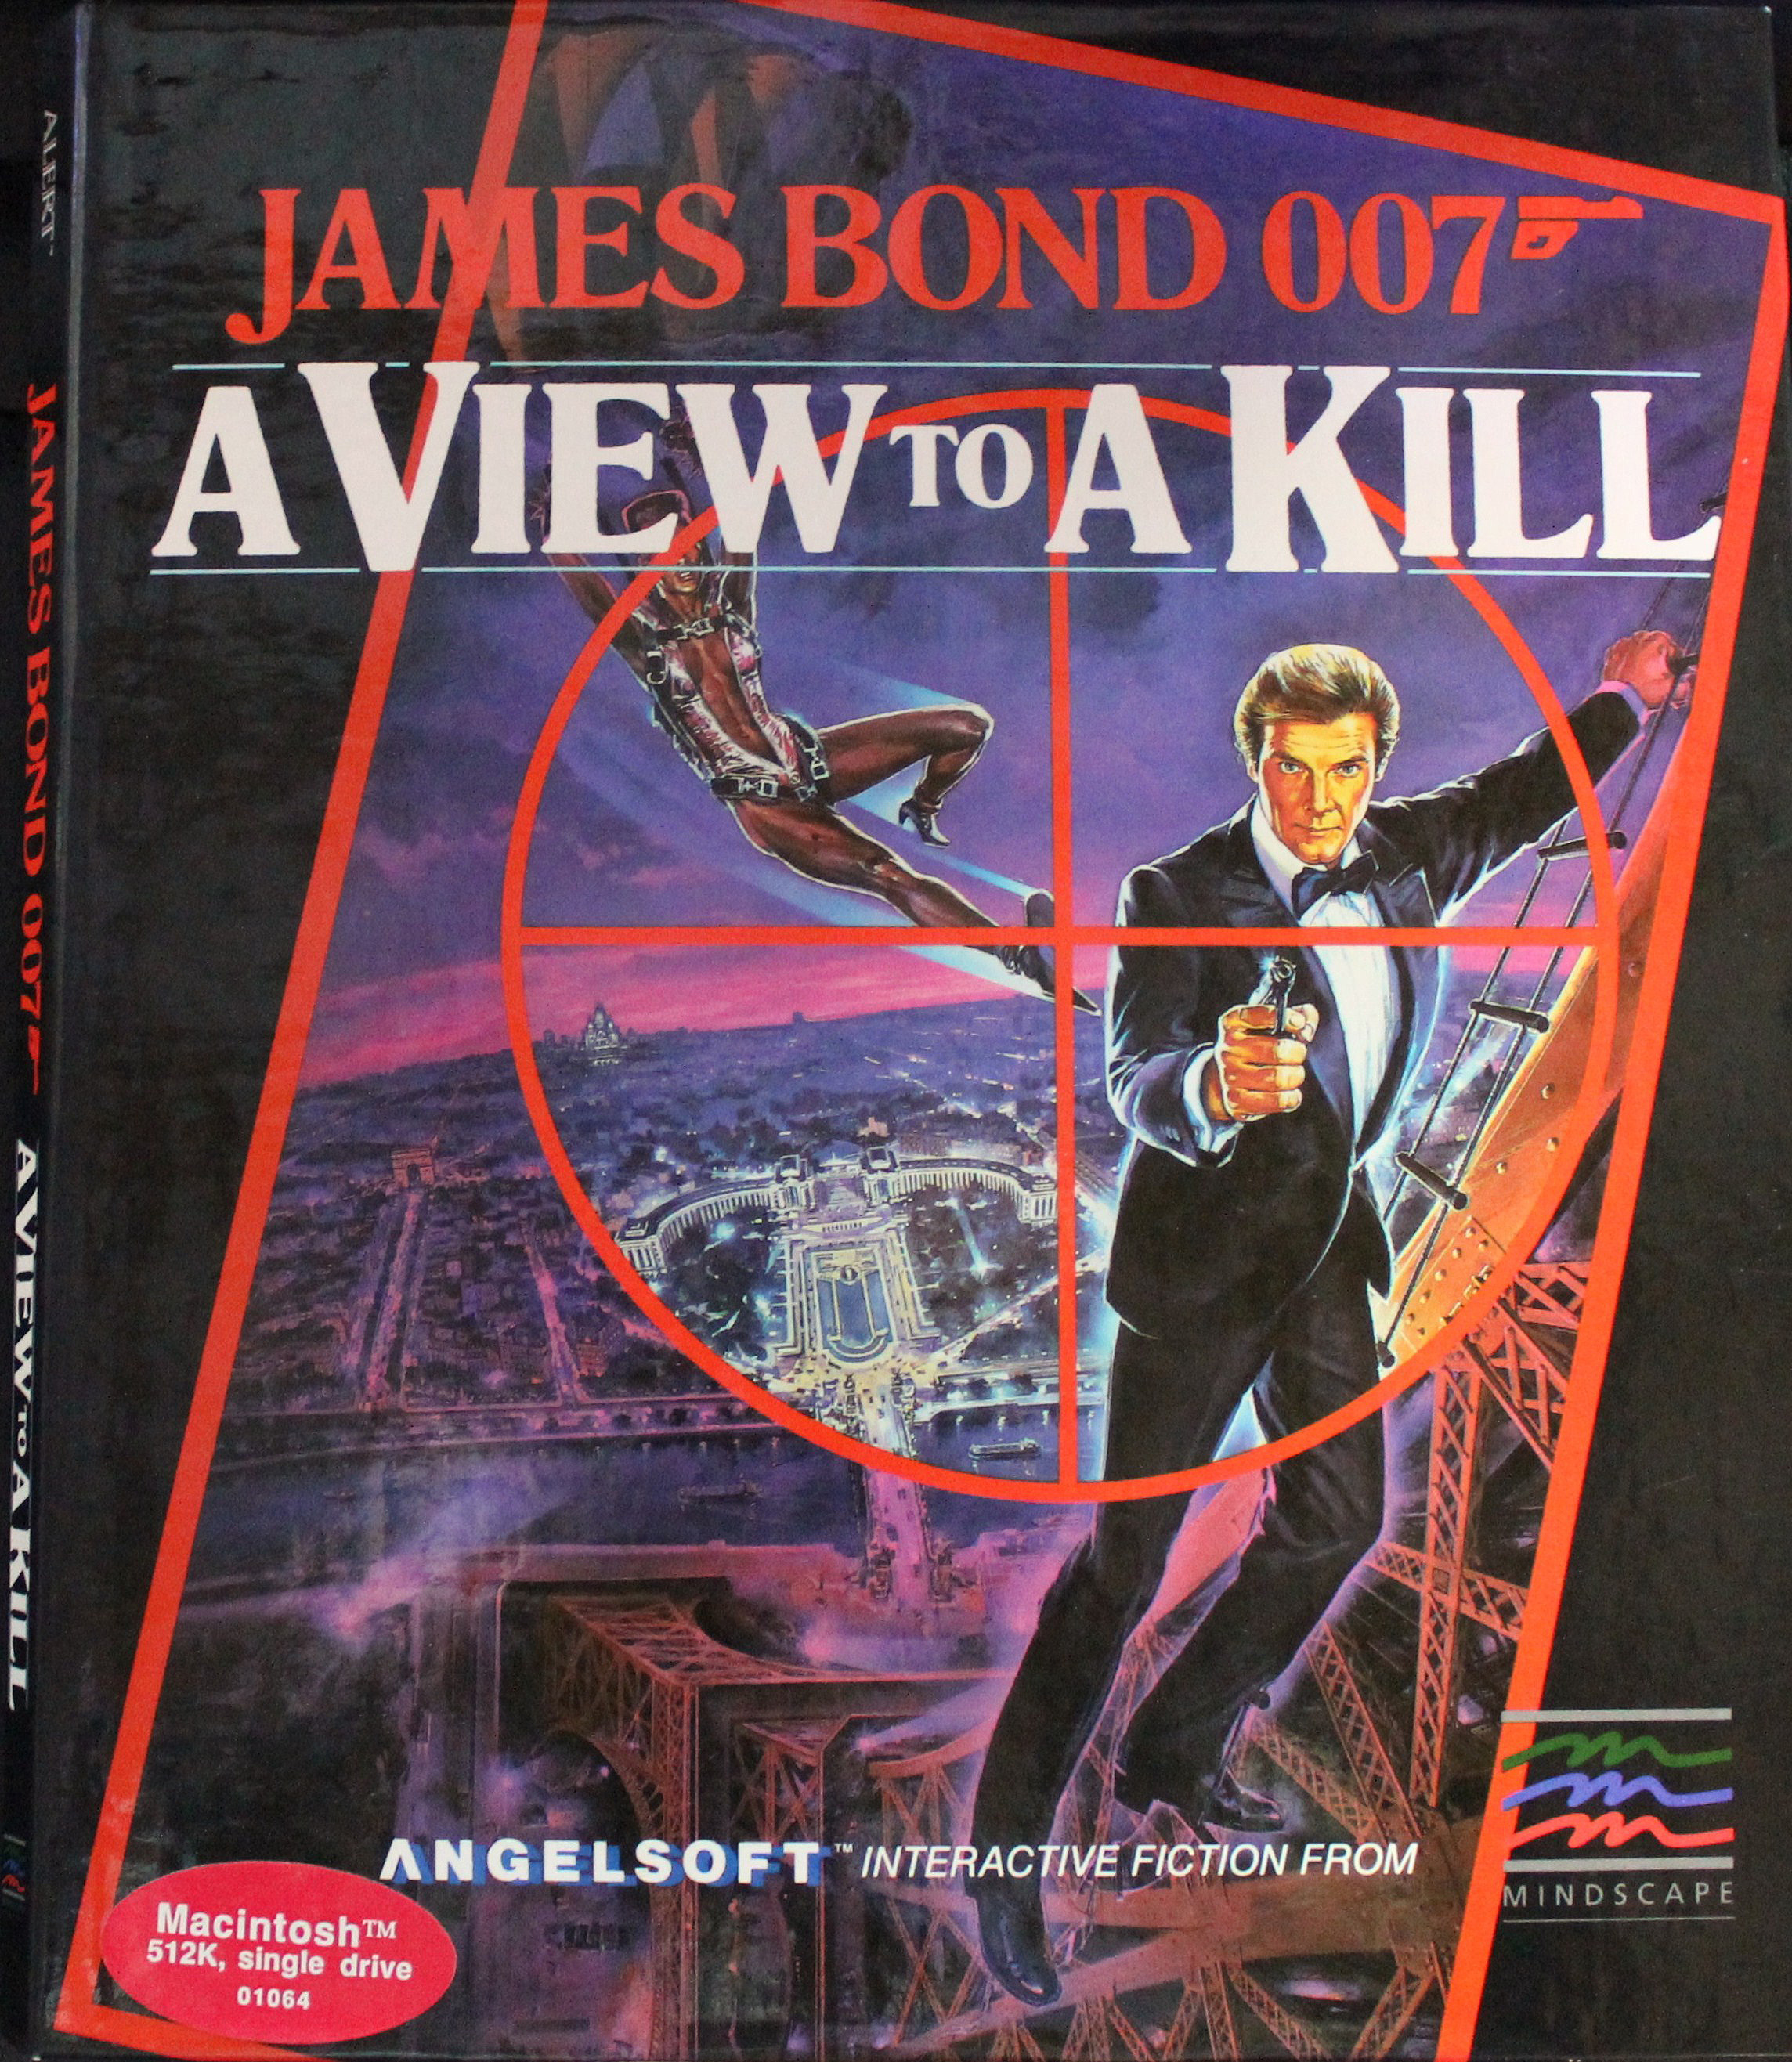 avtak_game_1985